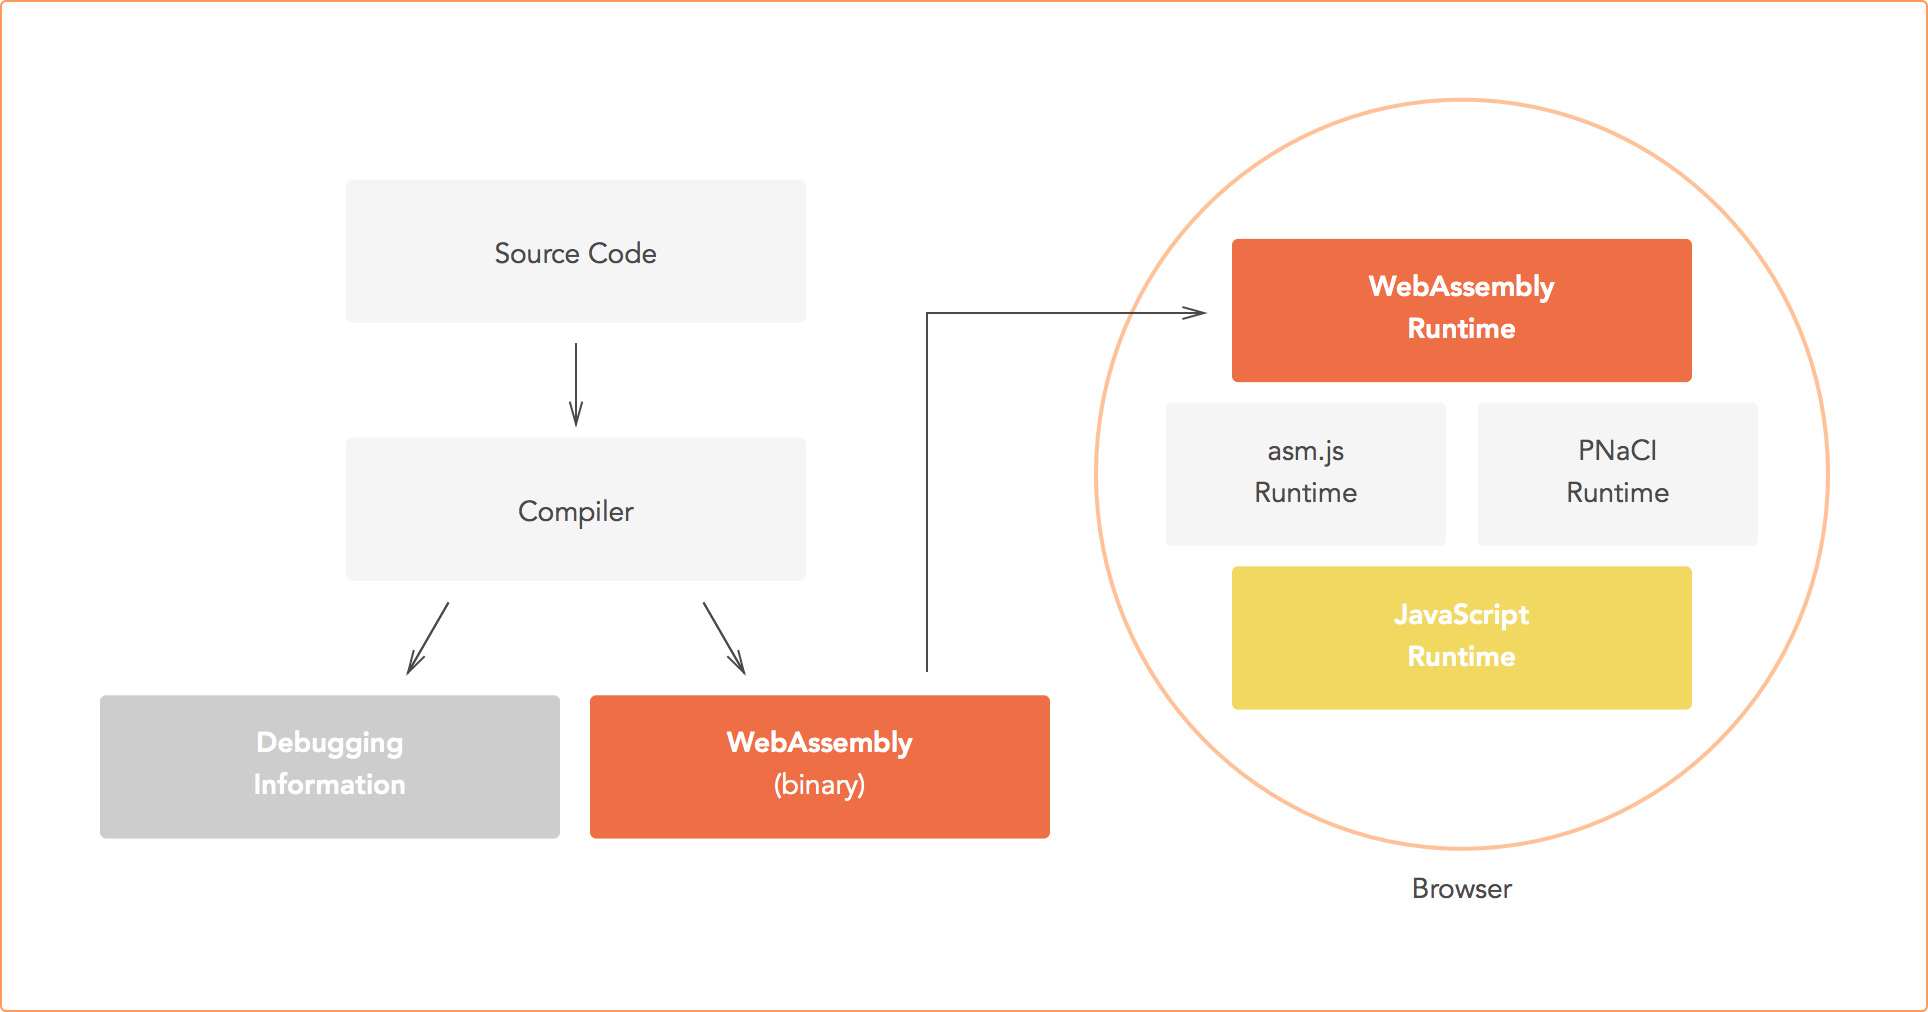 WebAssembly process flow diagram